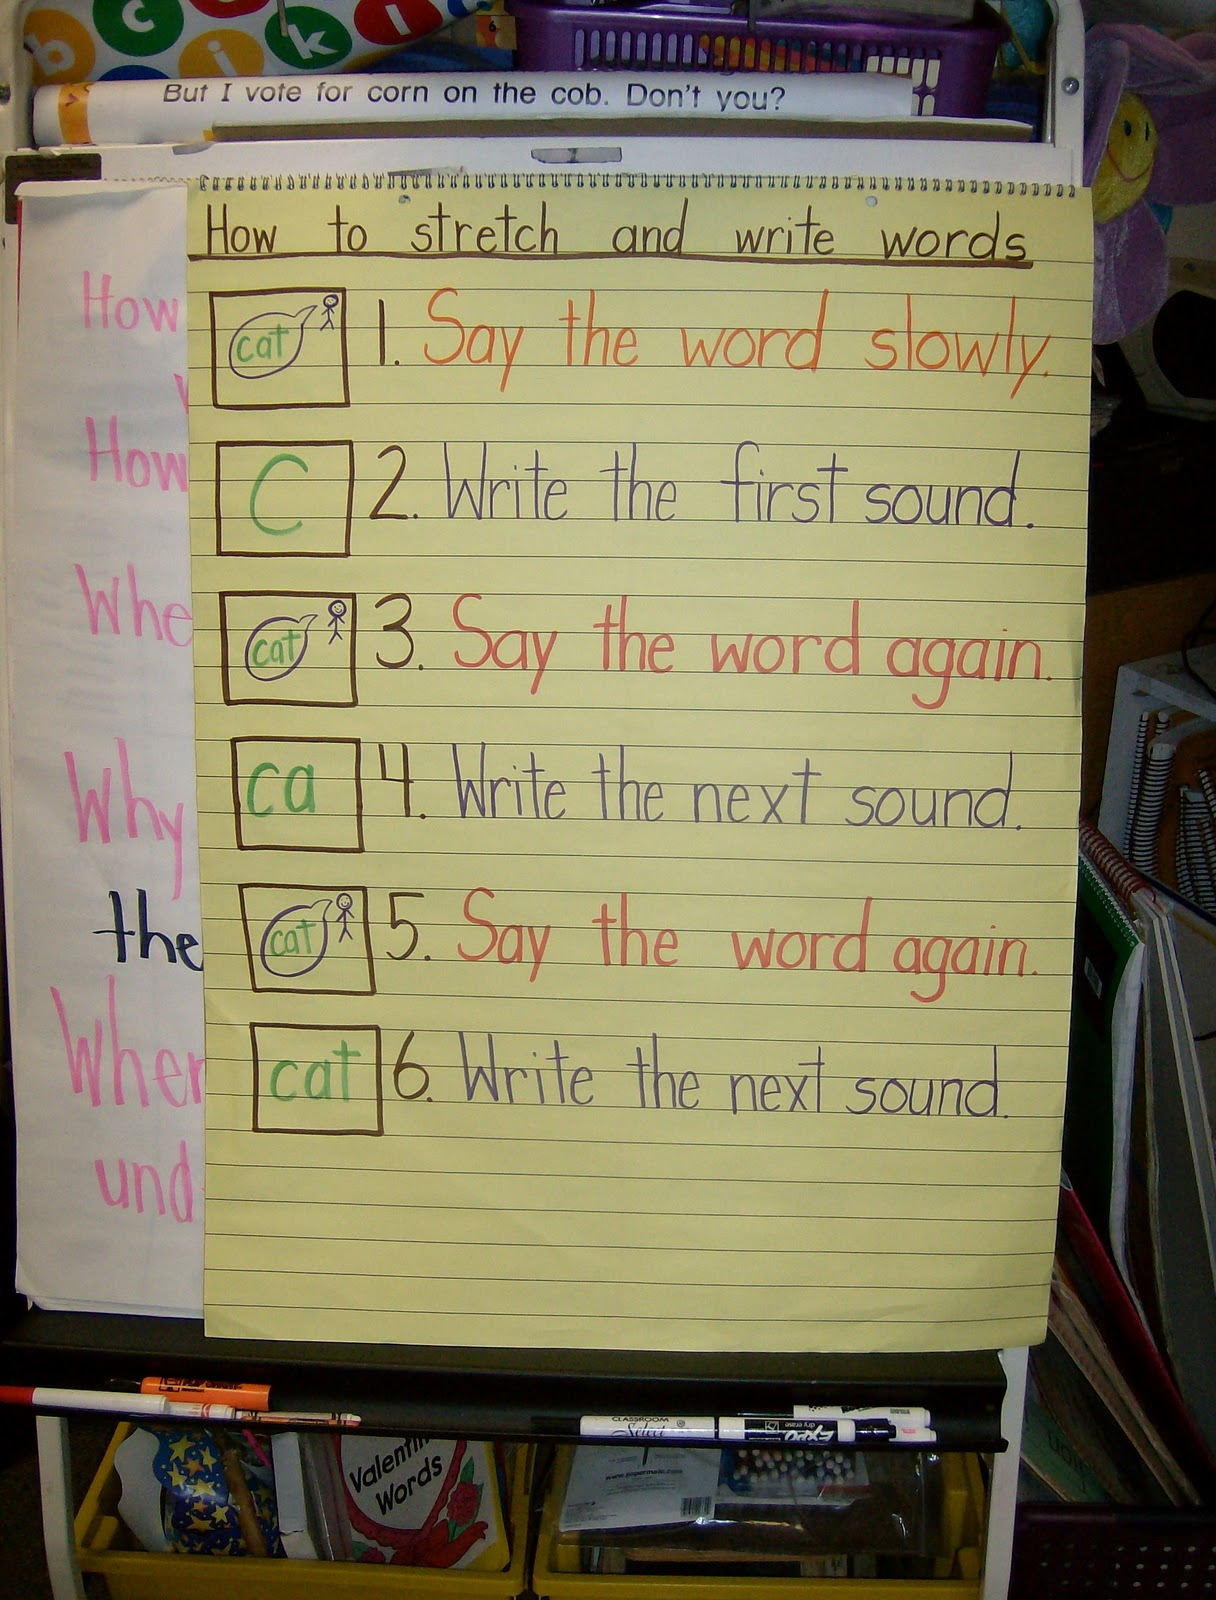 Anchor Charts in Kindergarten http://healthcareworkforce.net/um-anchor-charts-kindergarten.shtml